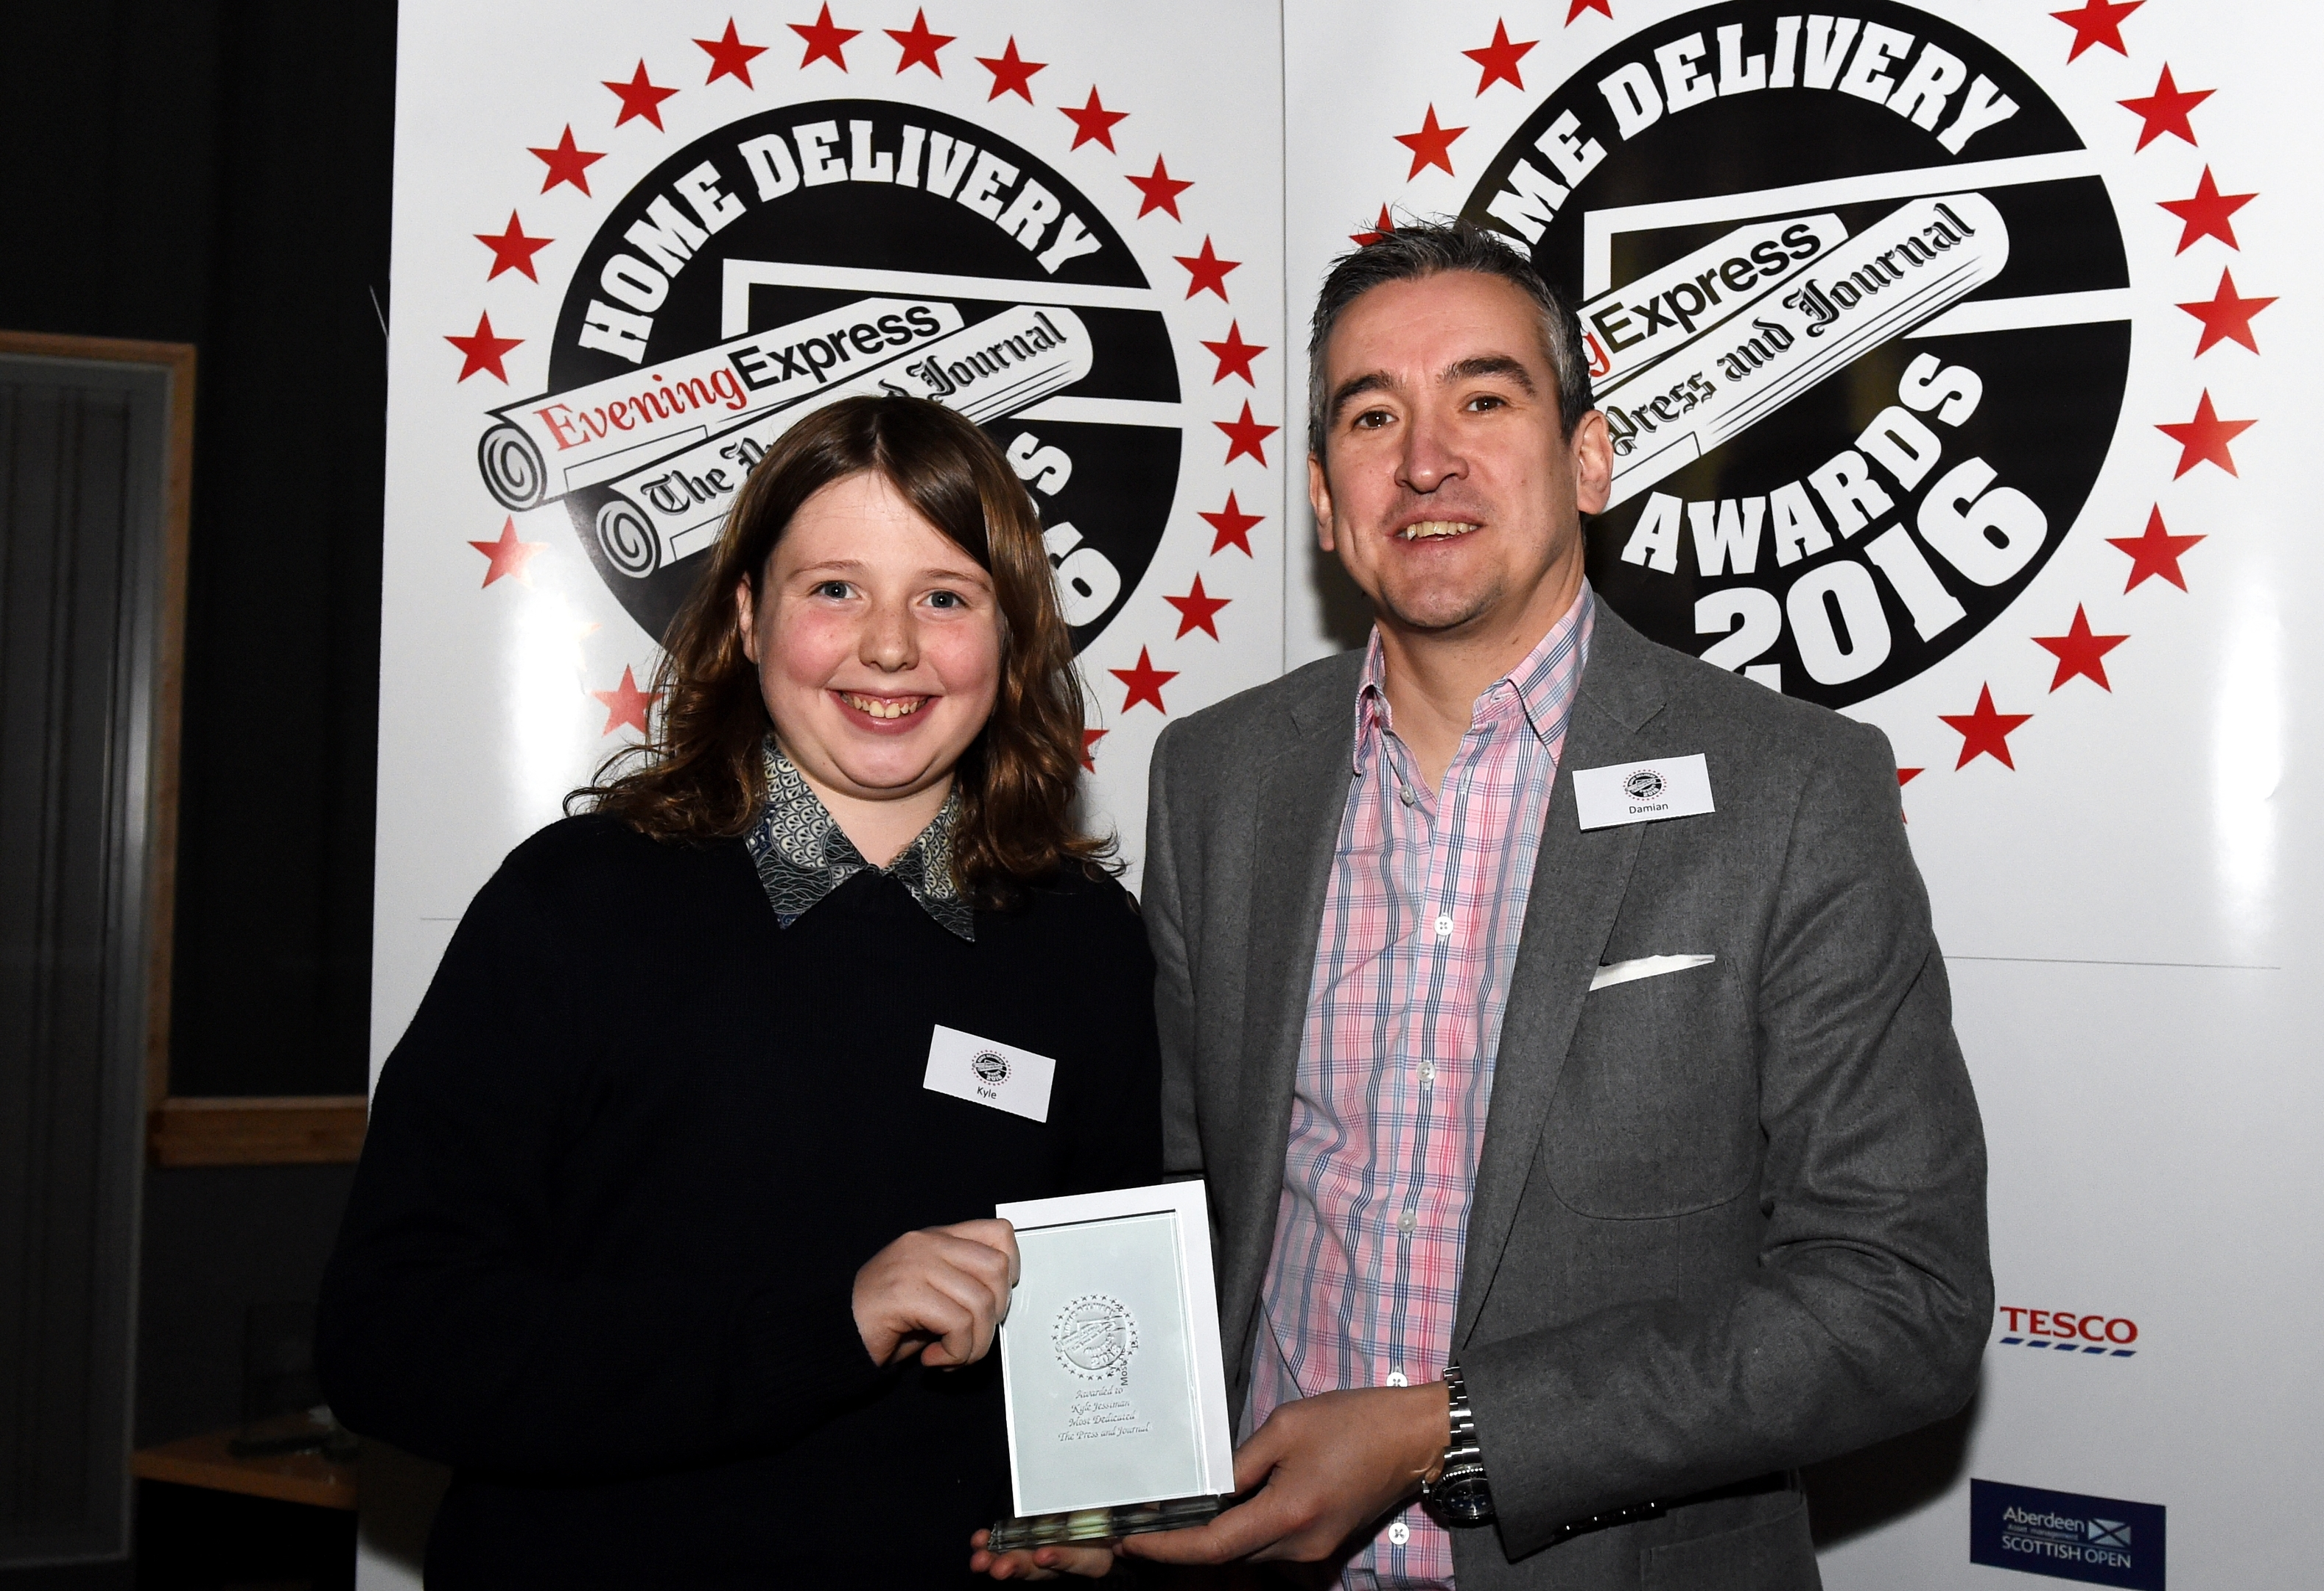 Aberdeen Journals ; Press and Journal and Evening Express Home Delivery Awards 2016, at the Belmont Cinema, Aberdeen. Pictured - Press and Journal Most Dedicated delivery agent City and Shire winner Kyle Jessiman of Newtonhill with Press and Journal Editor Damian Bates. Picture by Kami Thomson 17-04-16